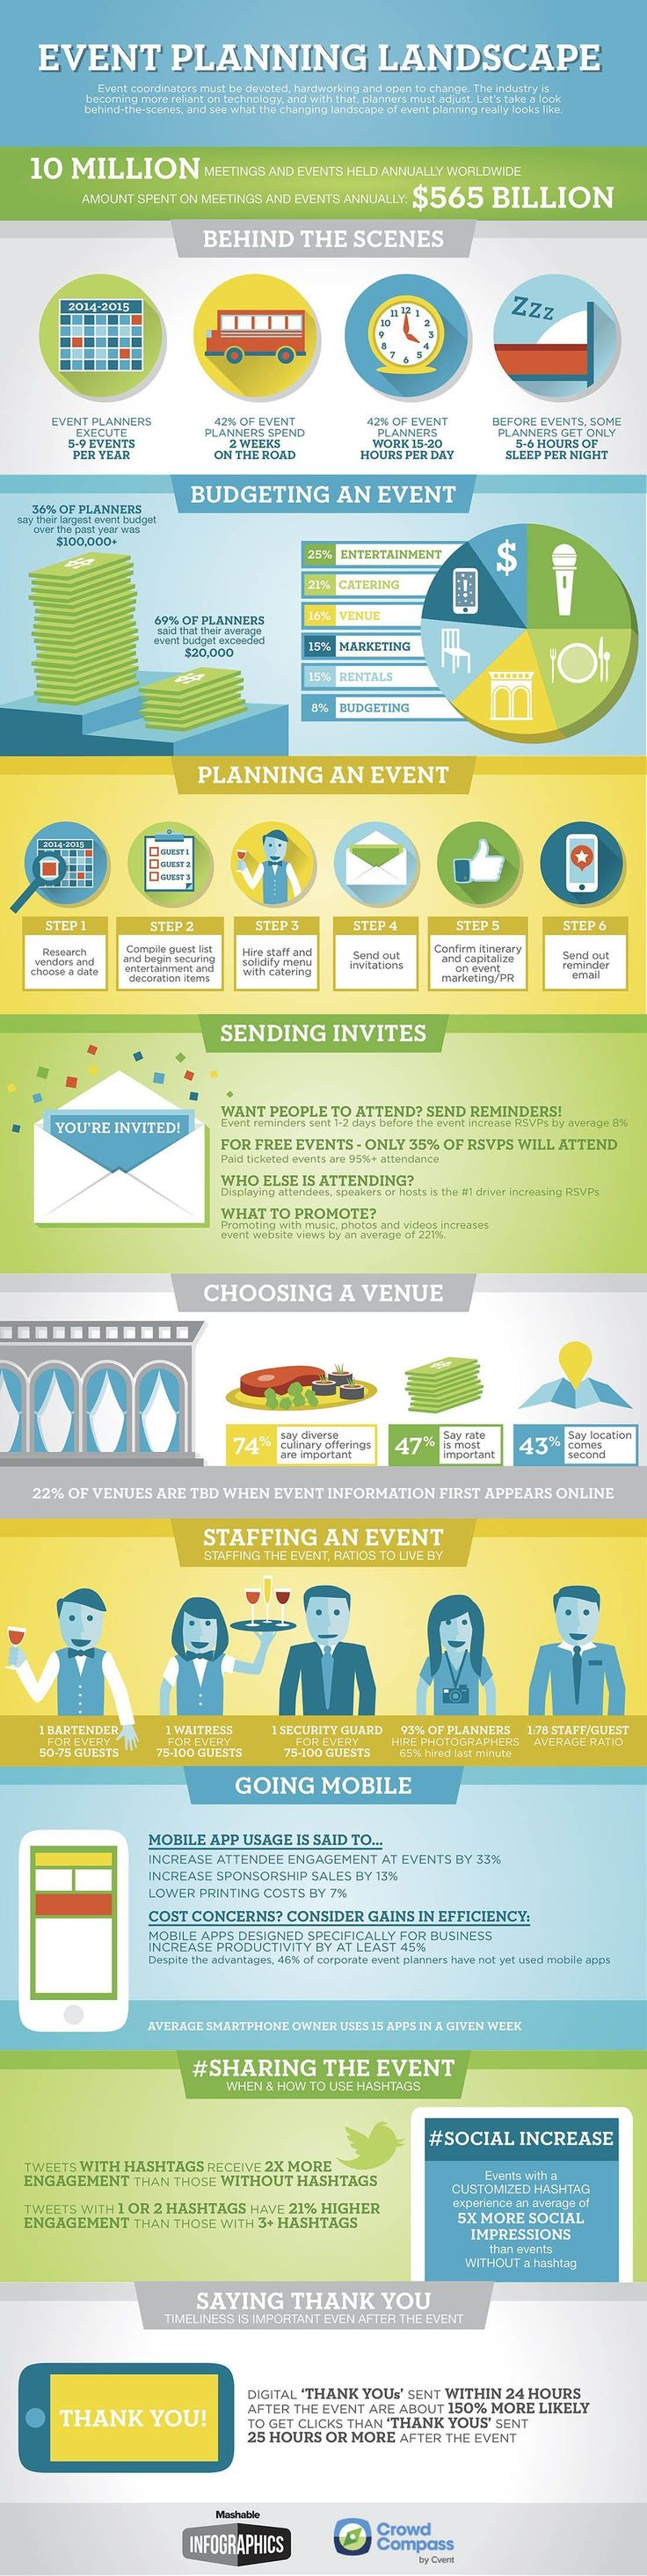 best banquet images on pinterest events marriage and wedding